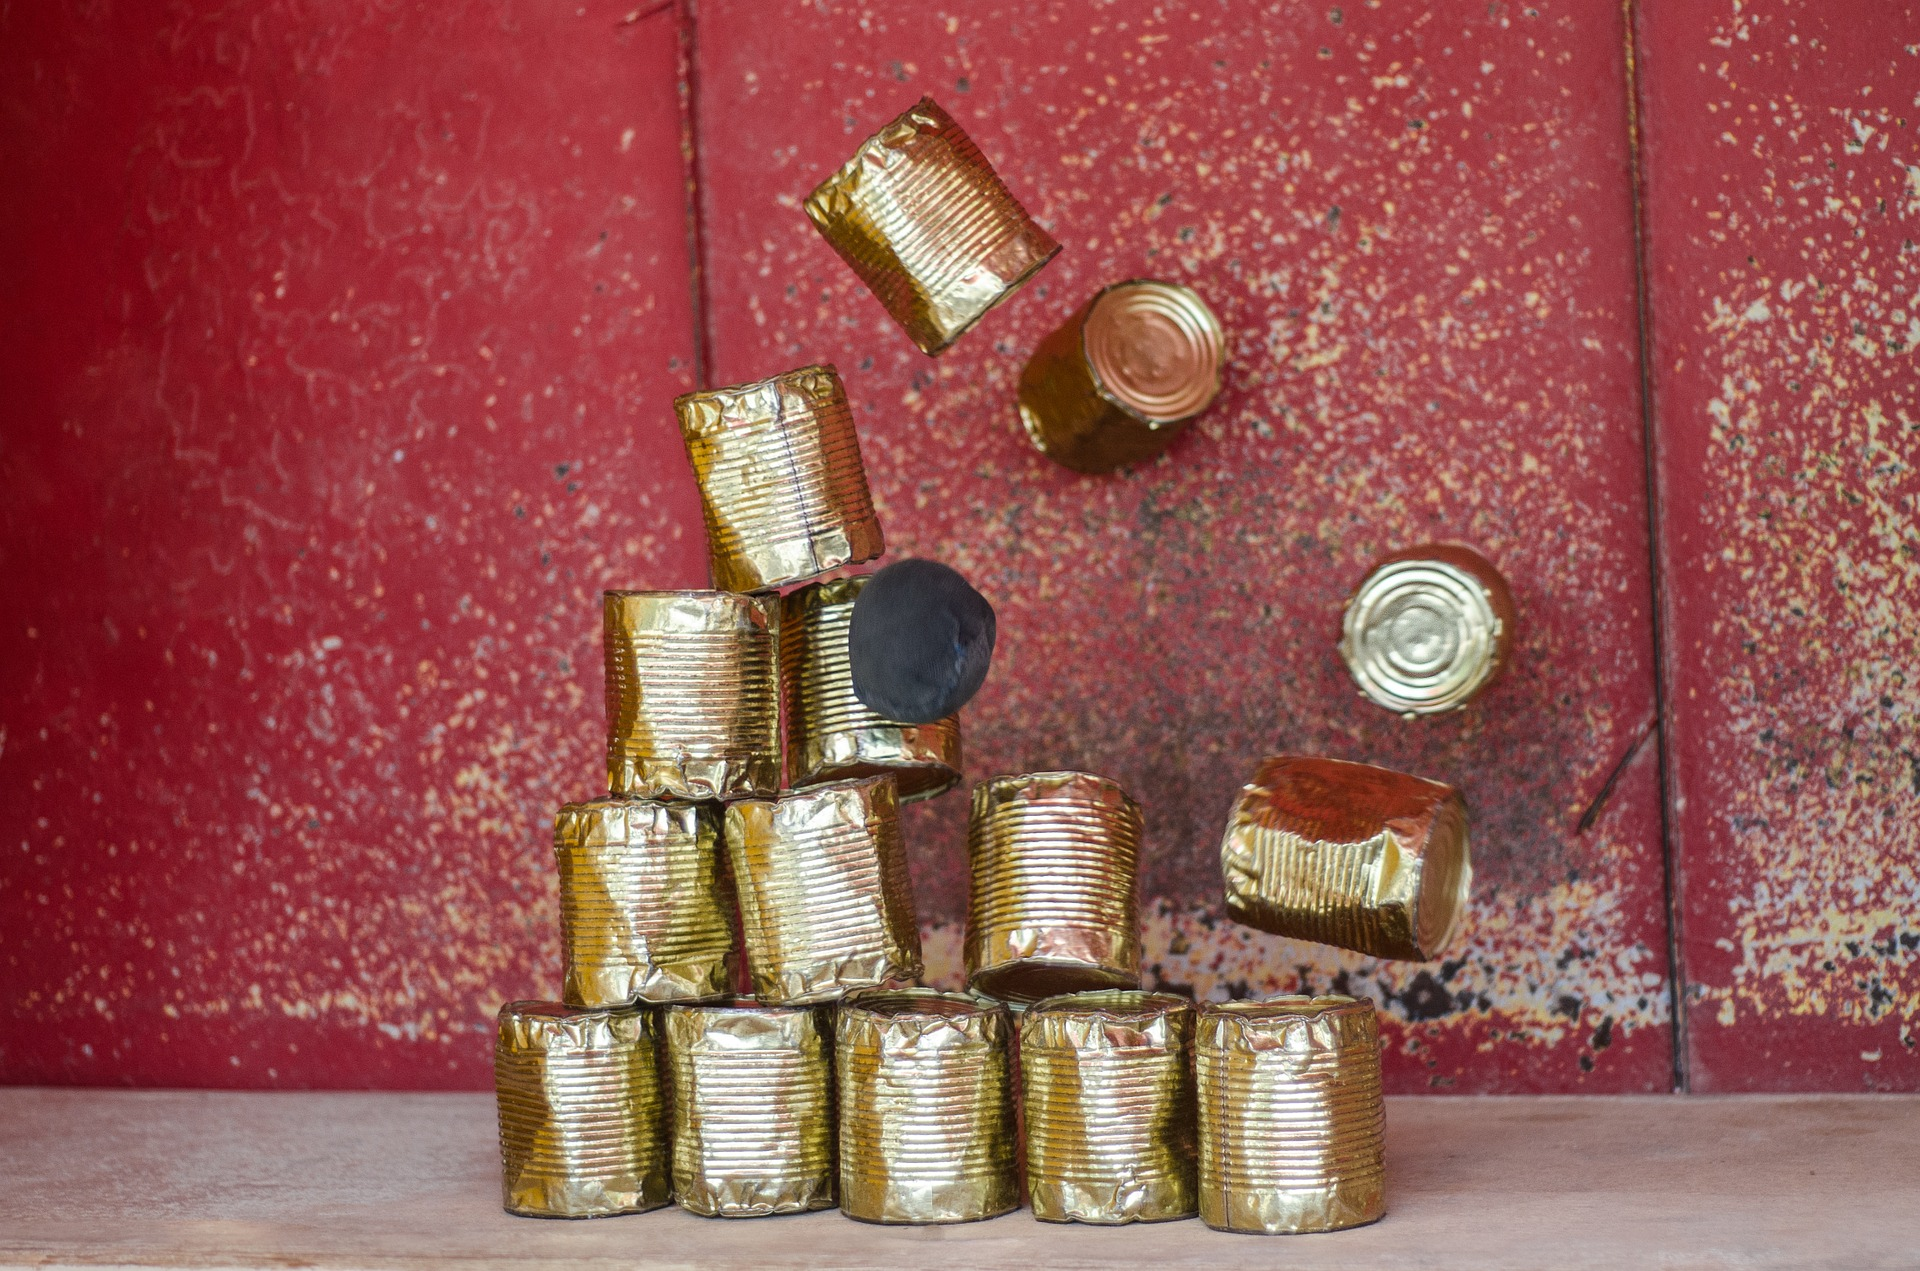 Bunch of Tins, Bunch, Grunge, Grungy, Metal, HQ Photo